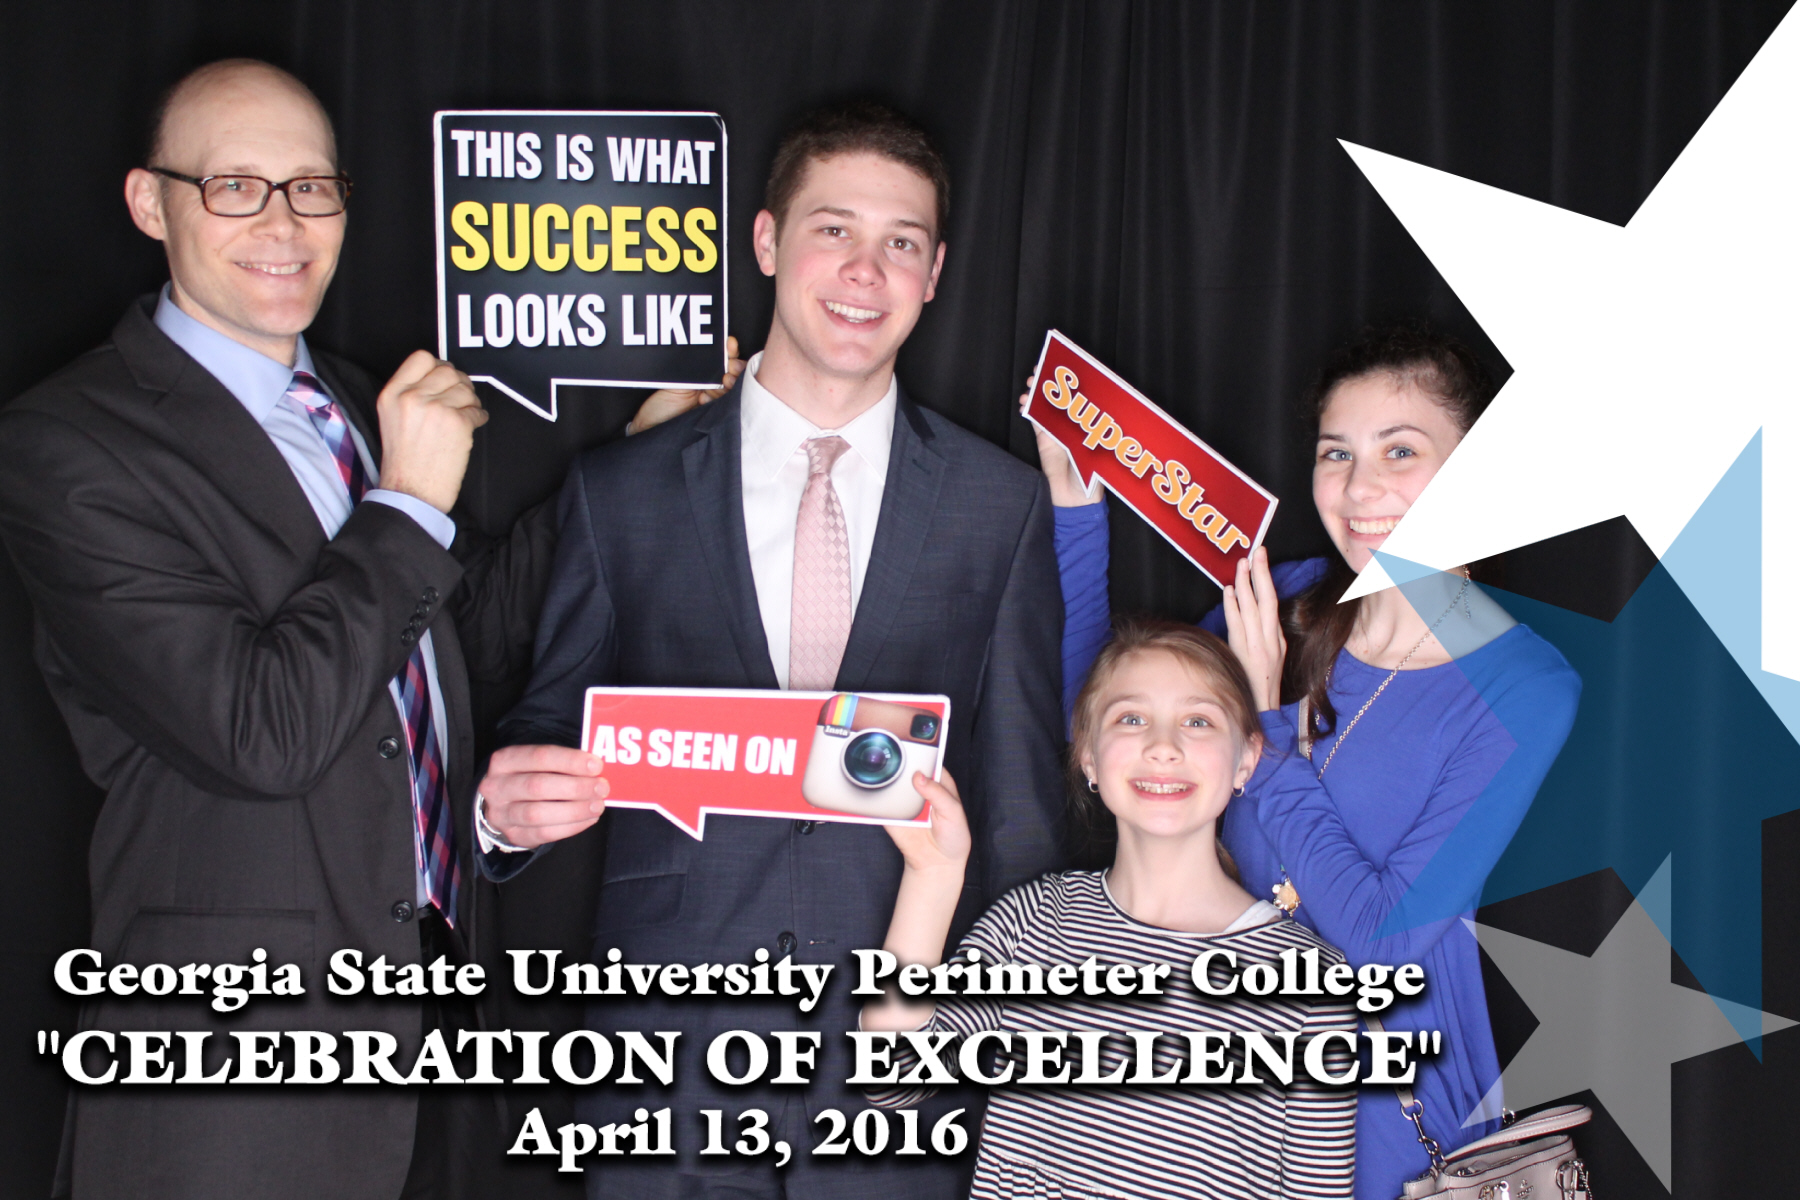 GSUPC Celebration of Excellence